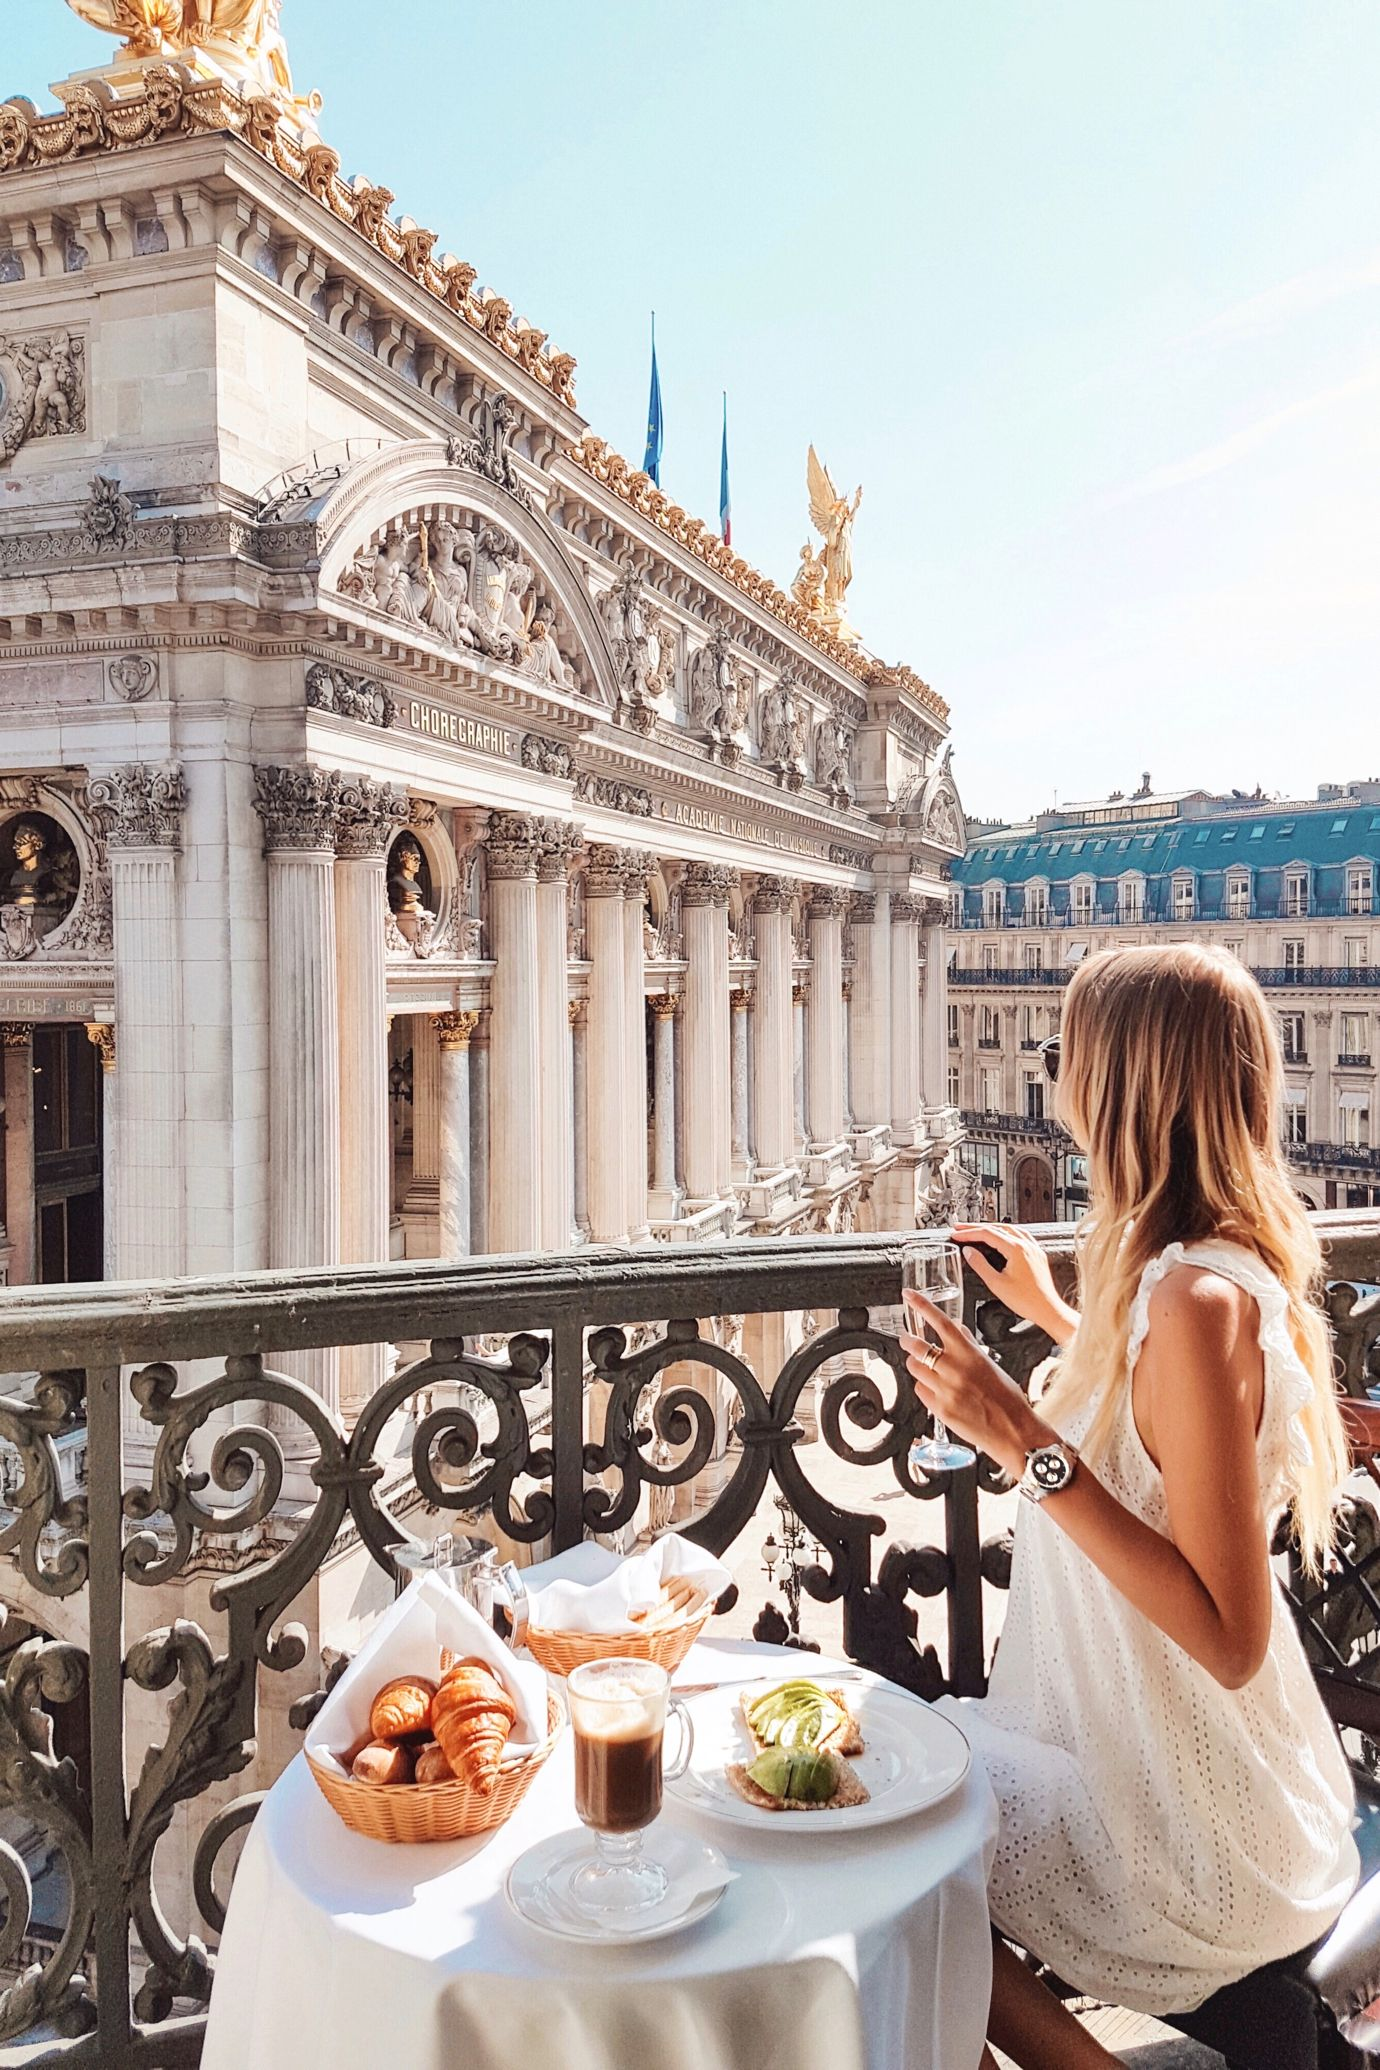 Breakfast time  Paris: http://www.ohhcouture.com/2017/06/monday-update-49/ #leoniehanne #ohhcouture